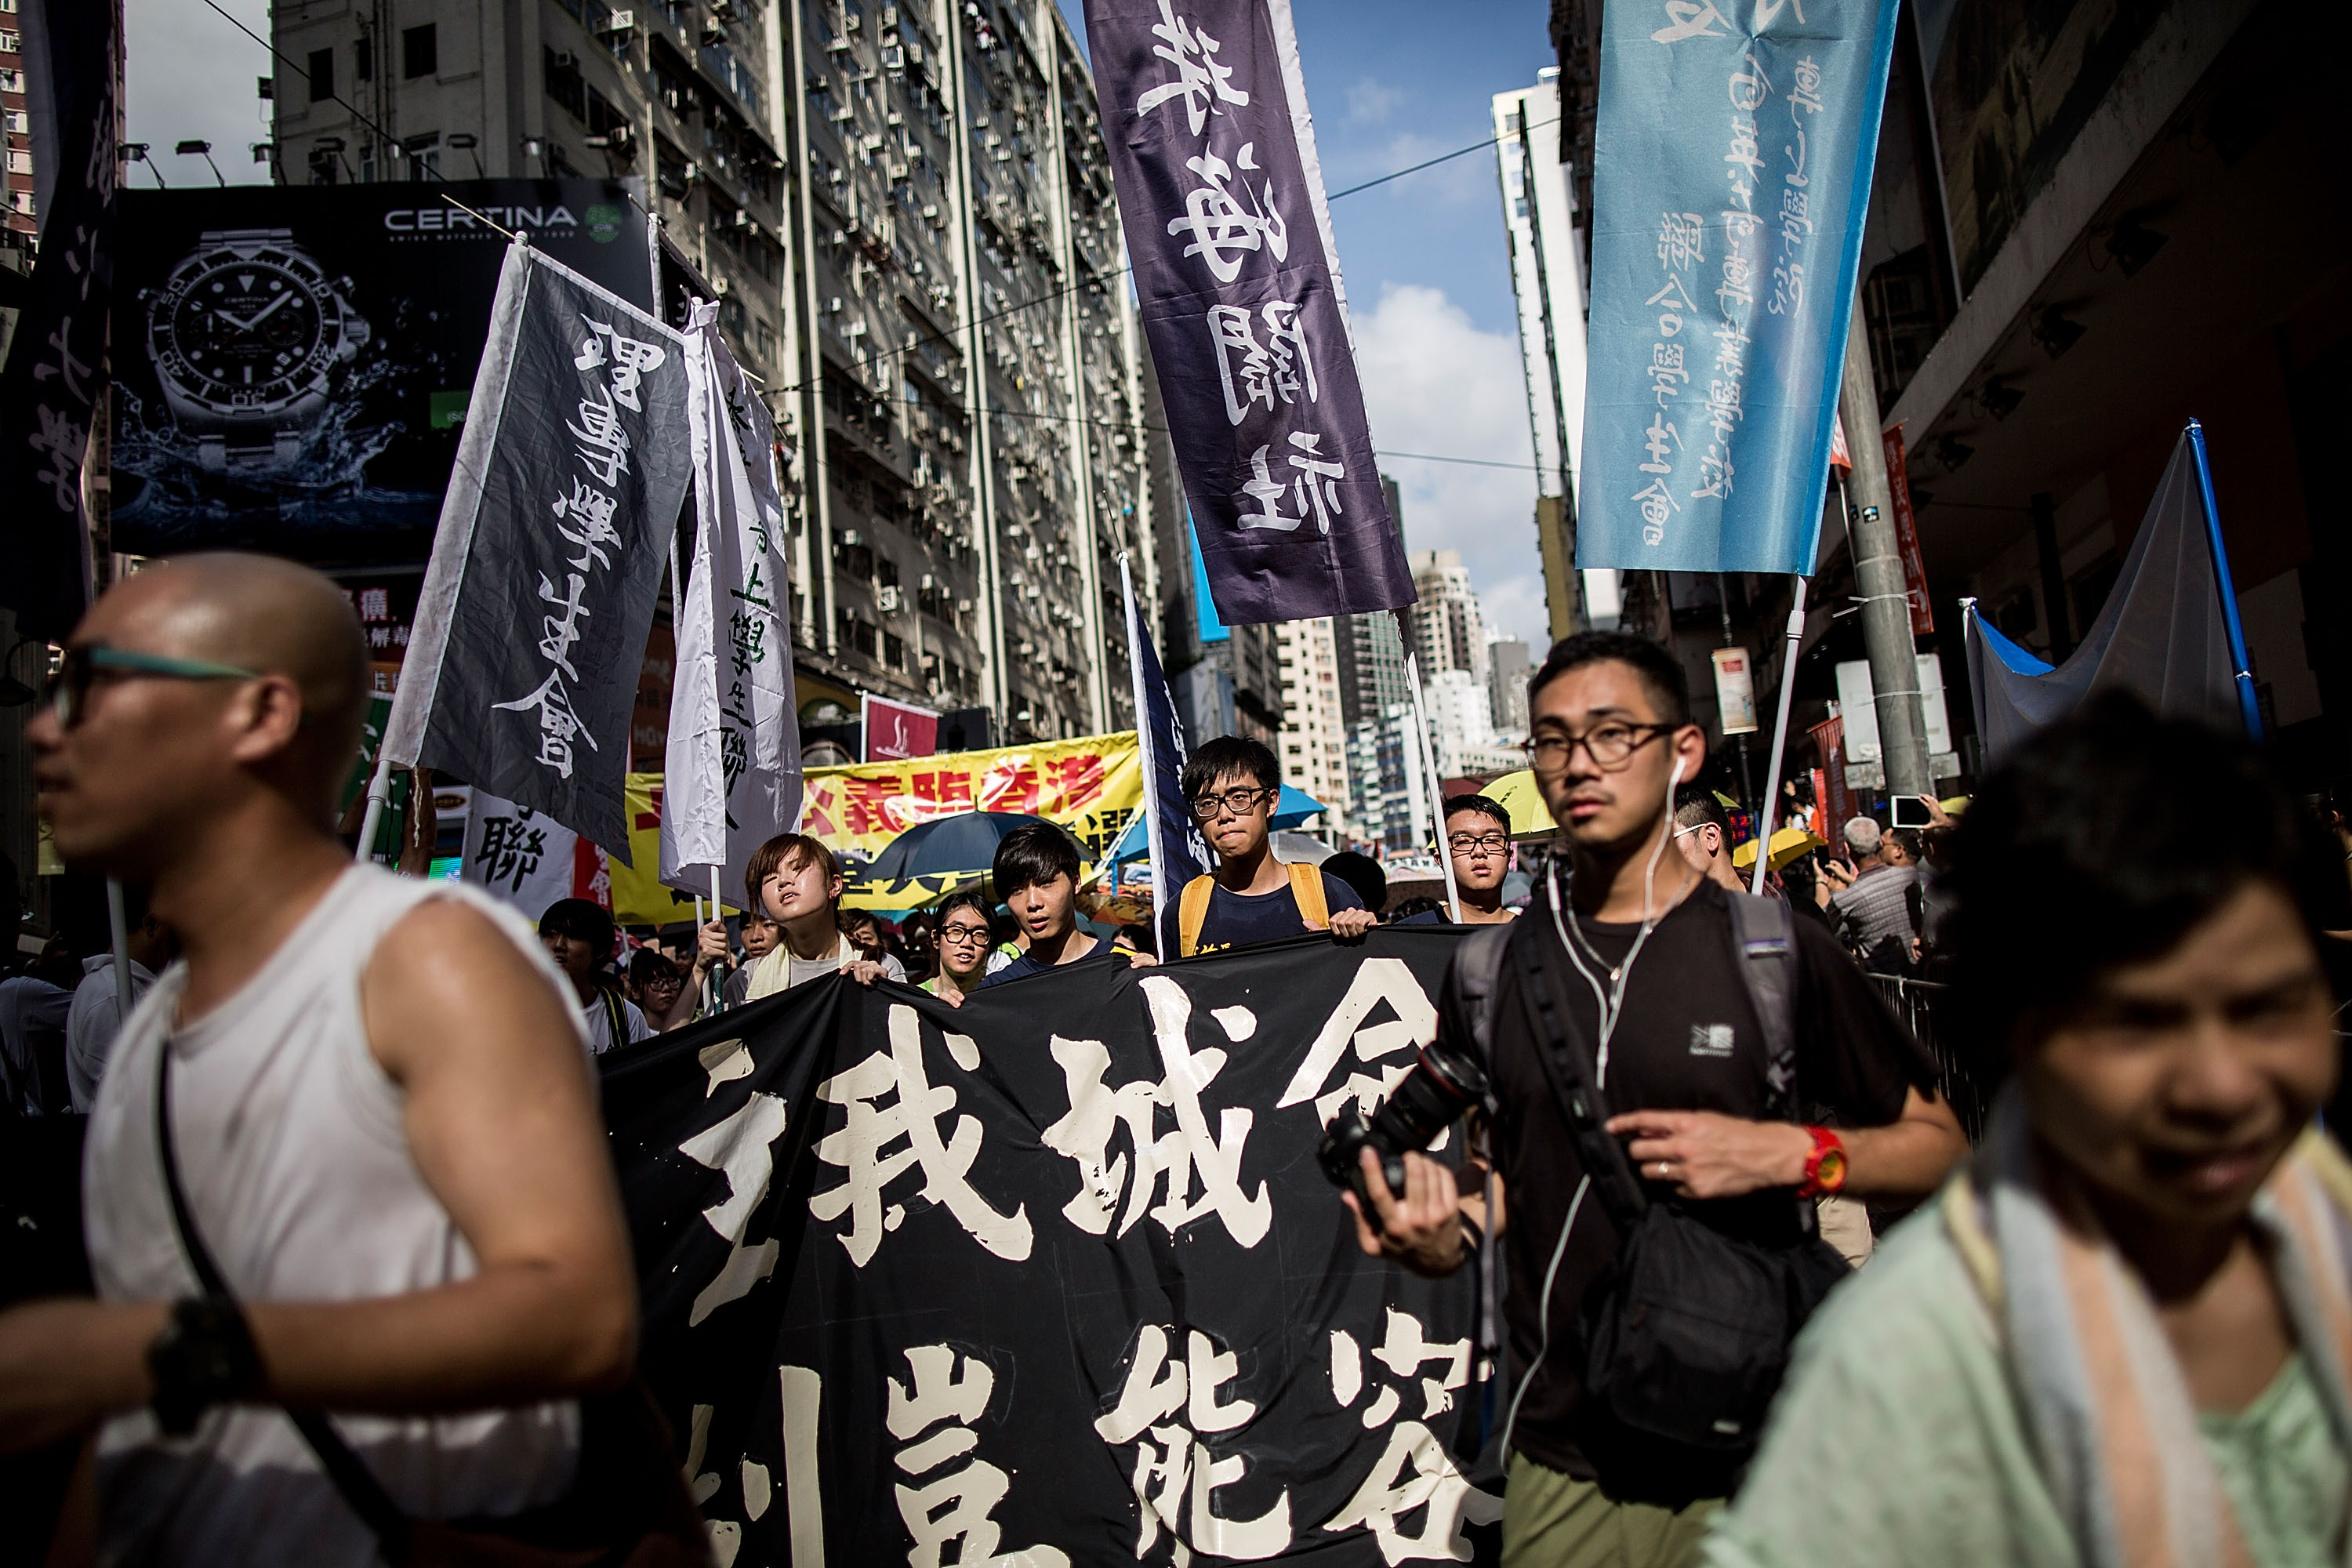 Protesters march on a street during a rally as they hold banners and shout slogans on July 1, 2015 in Hong Kong.